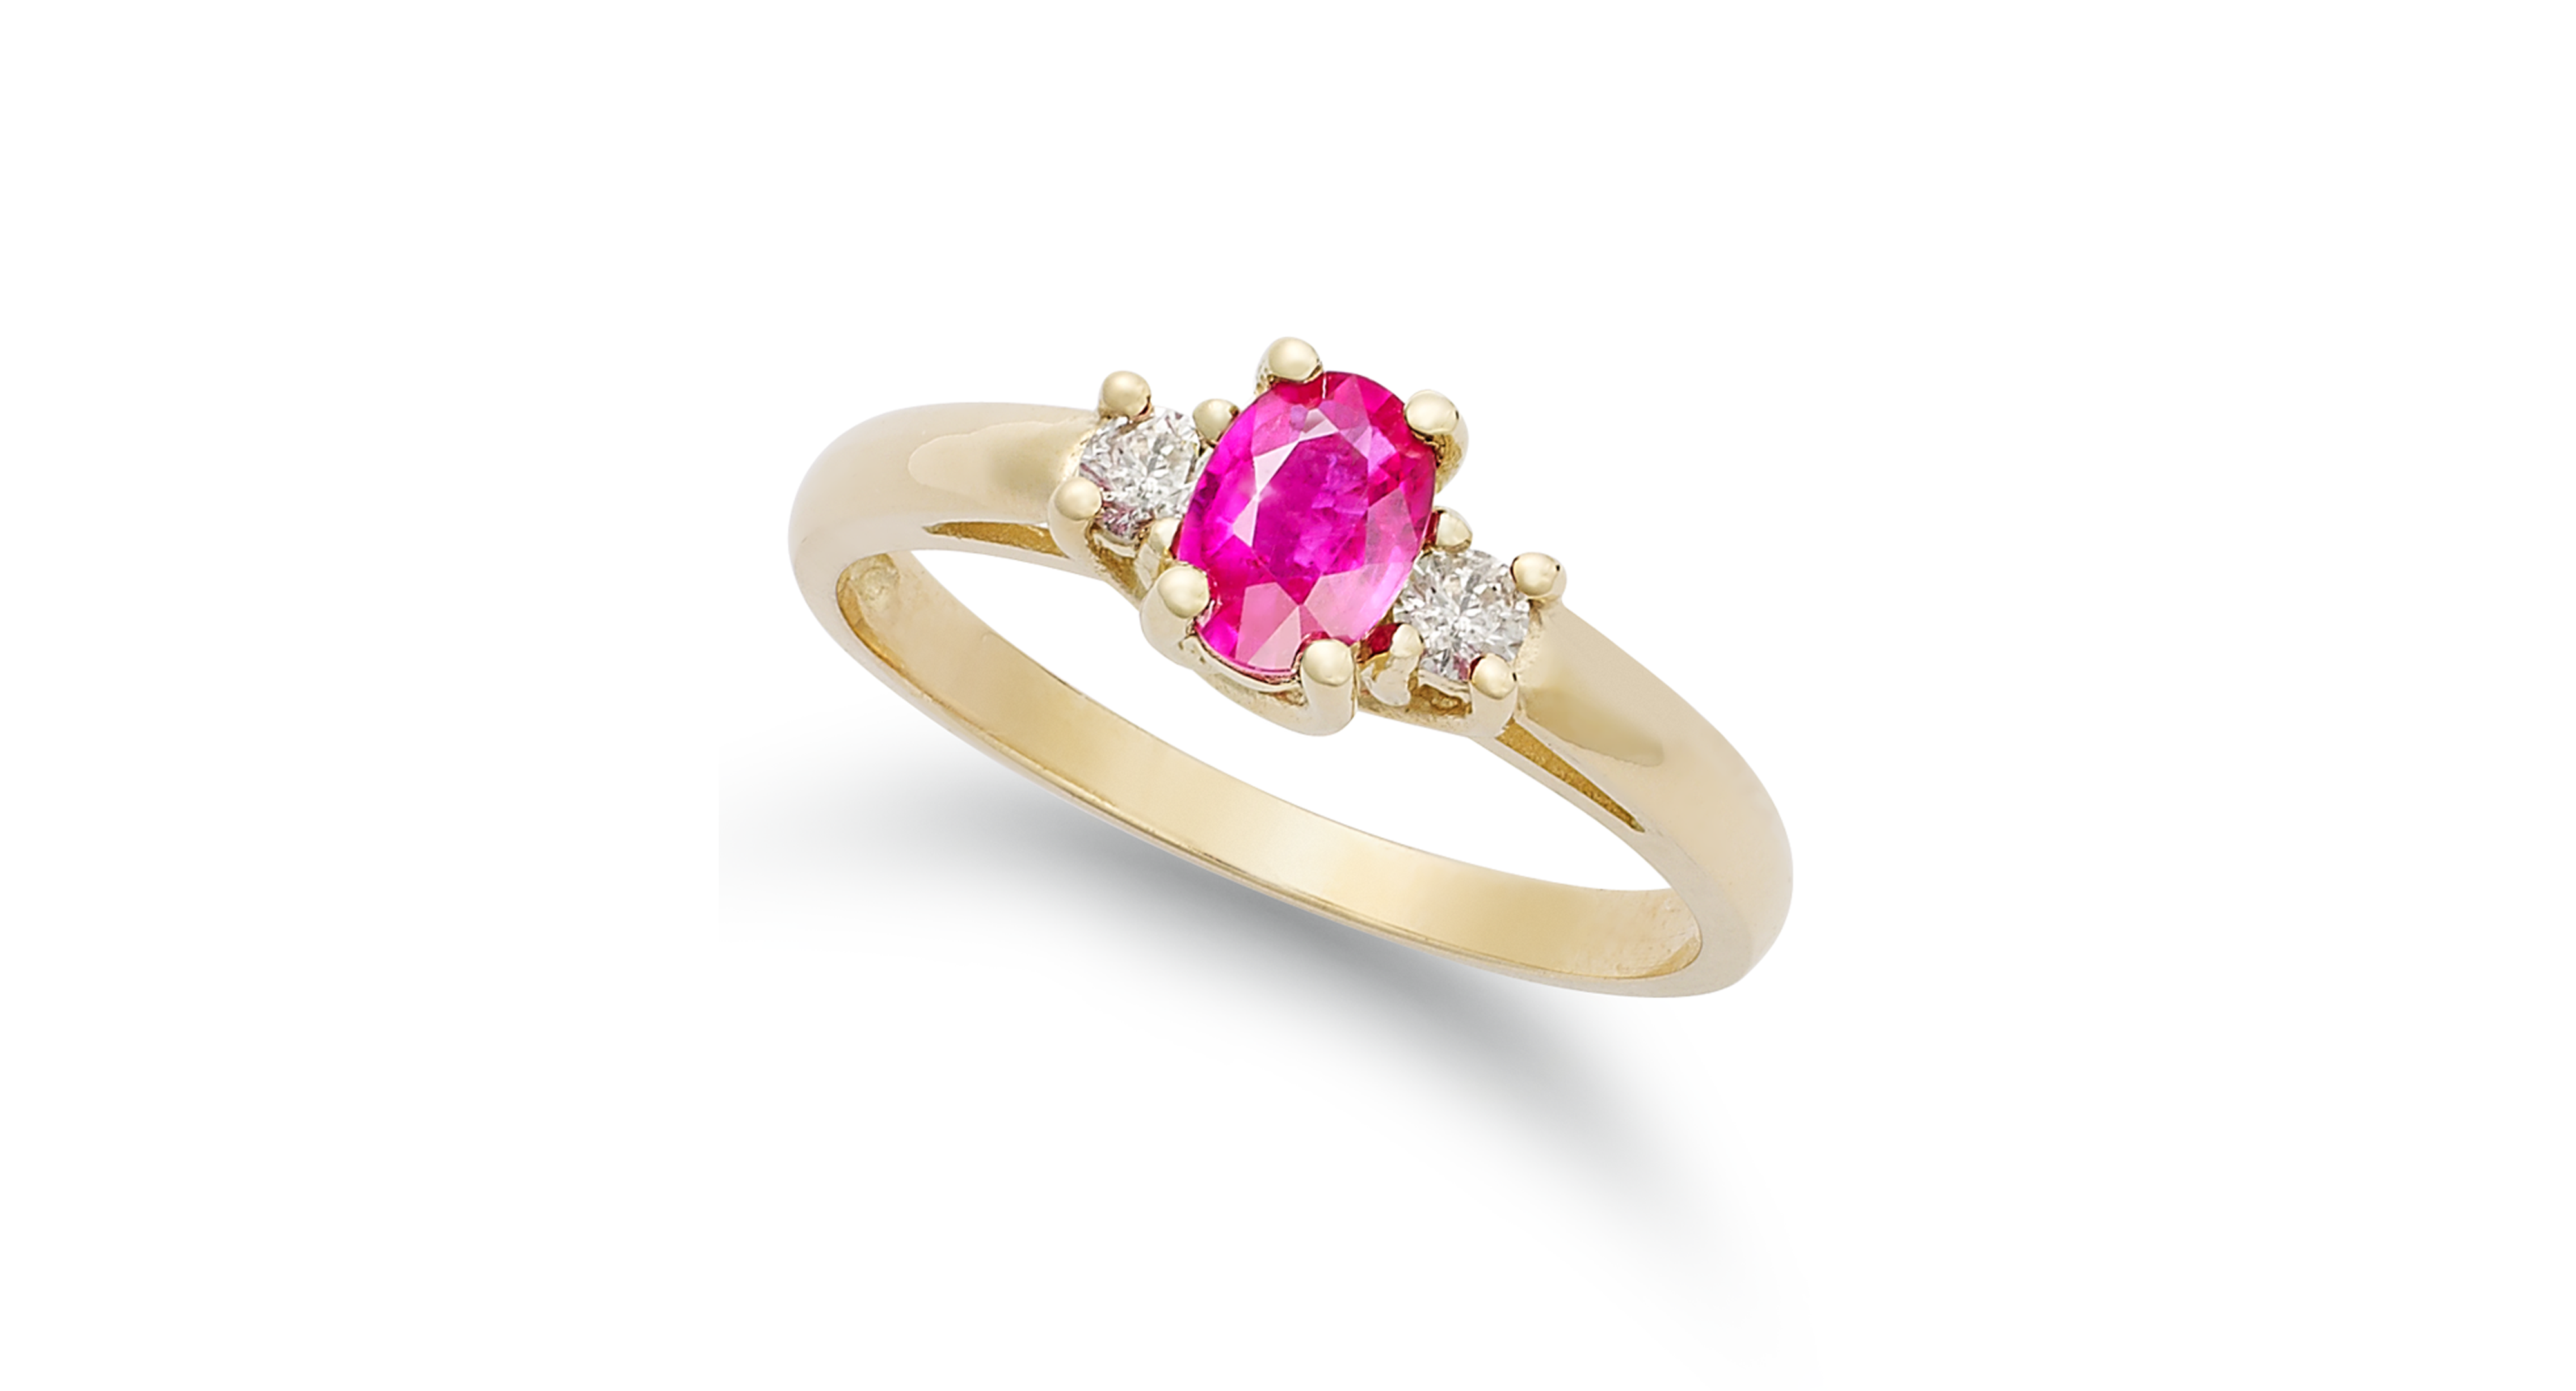 14k Gold Ring, Ruby (1/2 ct. t.w.) and Diamond (1/8 ct. t.w.) 3-Stone Ring